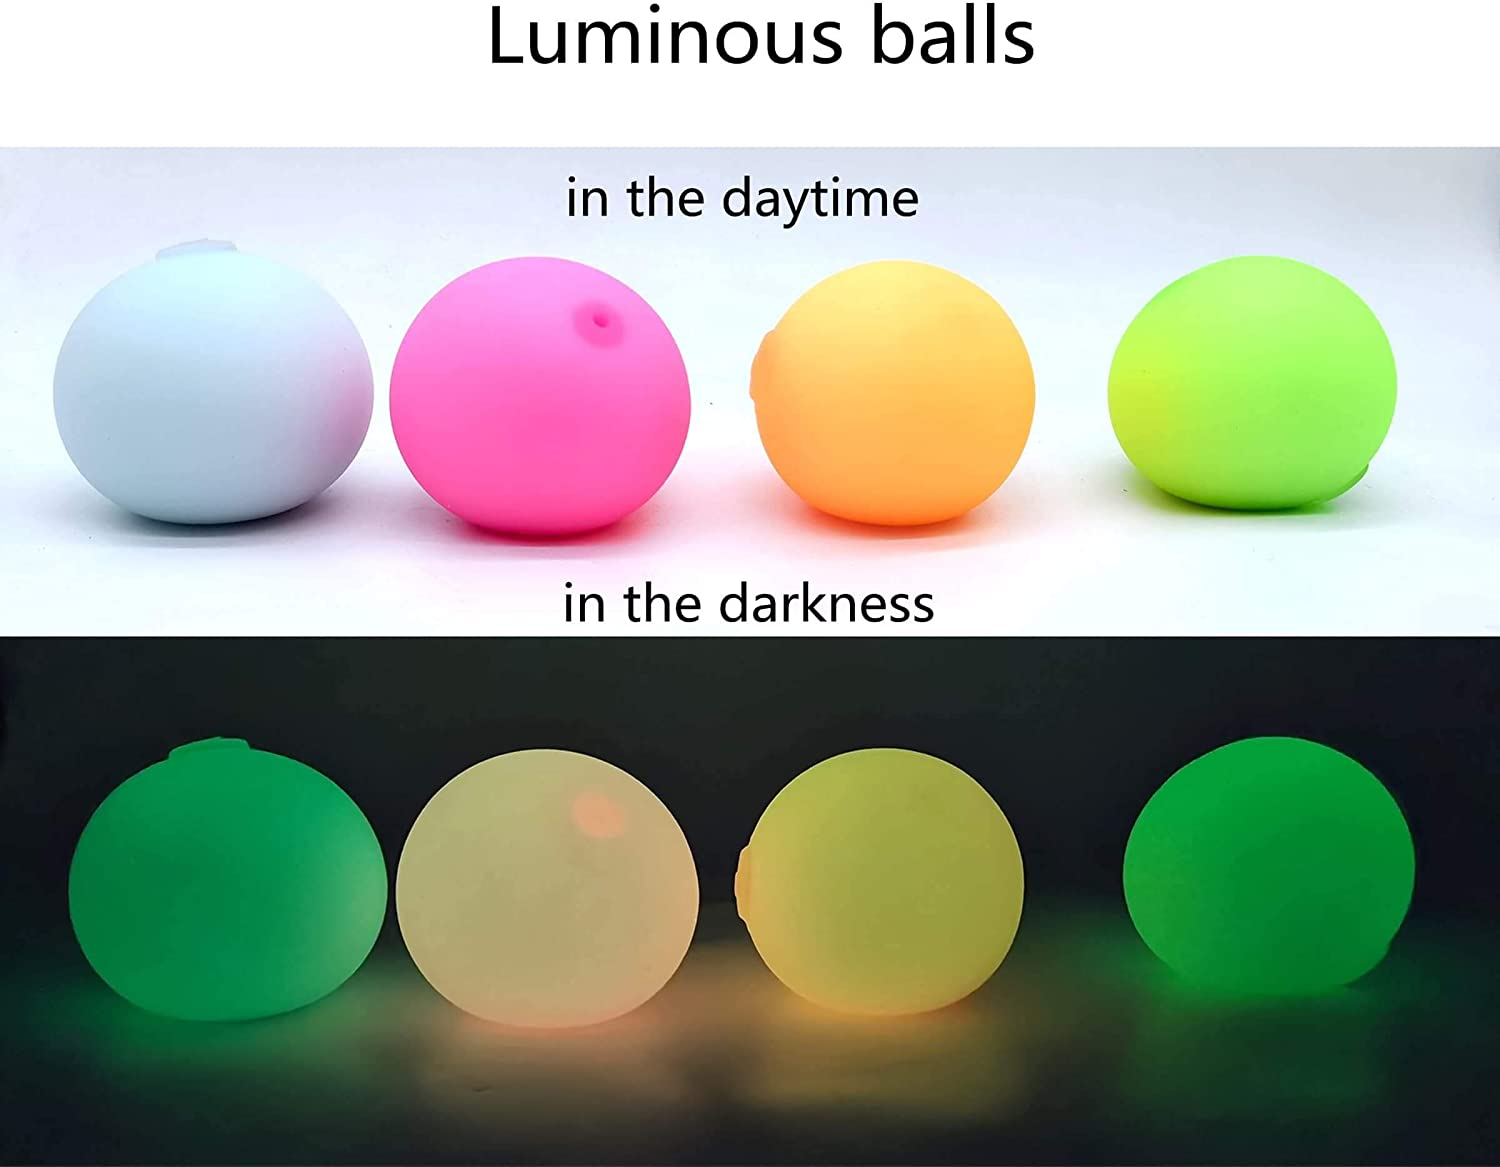 Squeeze Toys 3 Pack Nebula Color, Neon Color, Luminous ICINSKY Stress Balls for Adults and Kids Anxiety Sensory Releasing Ball Fidget Toys Complete Gift Set